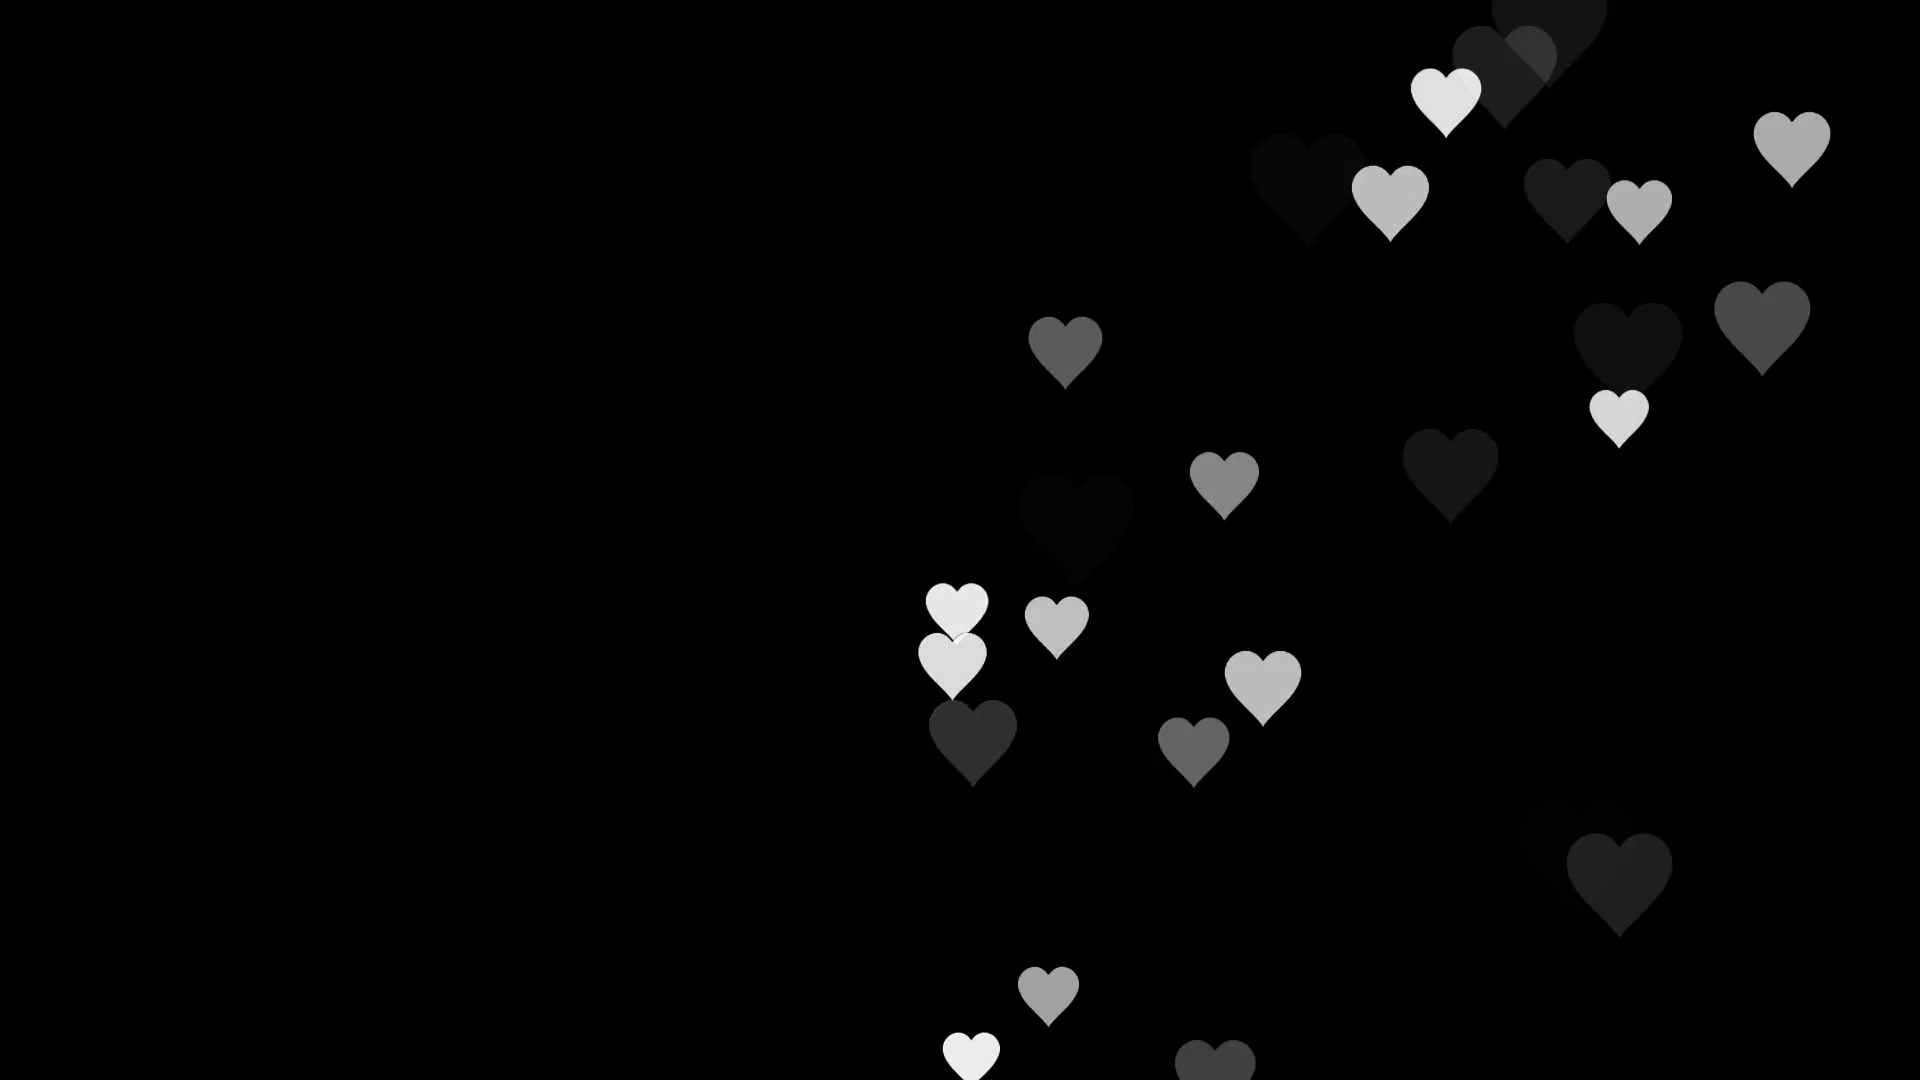 Animated many moving small white hearts useful greeting for wishing